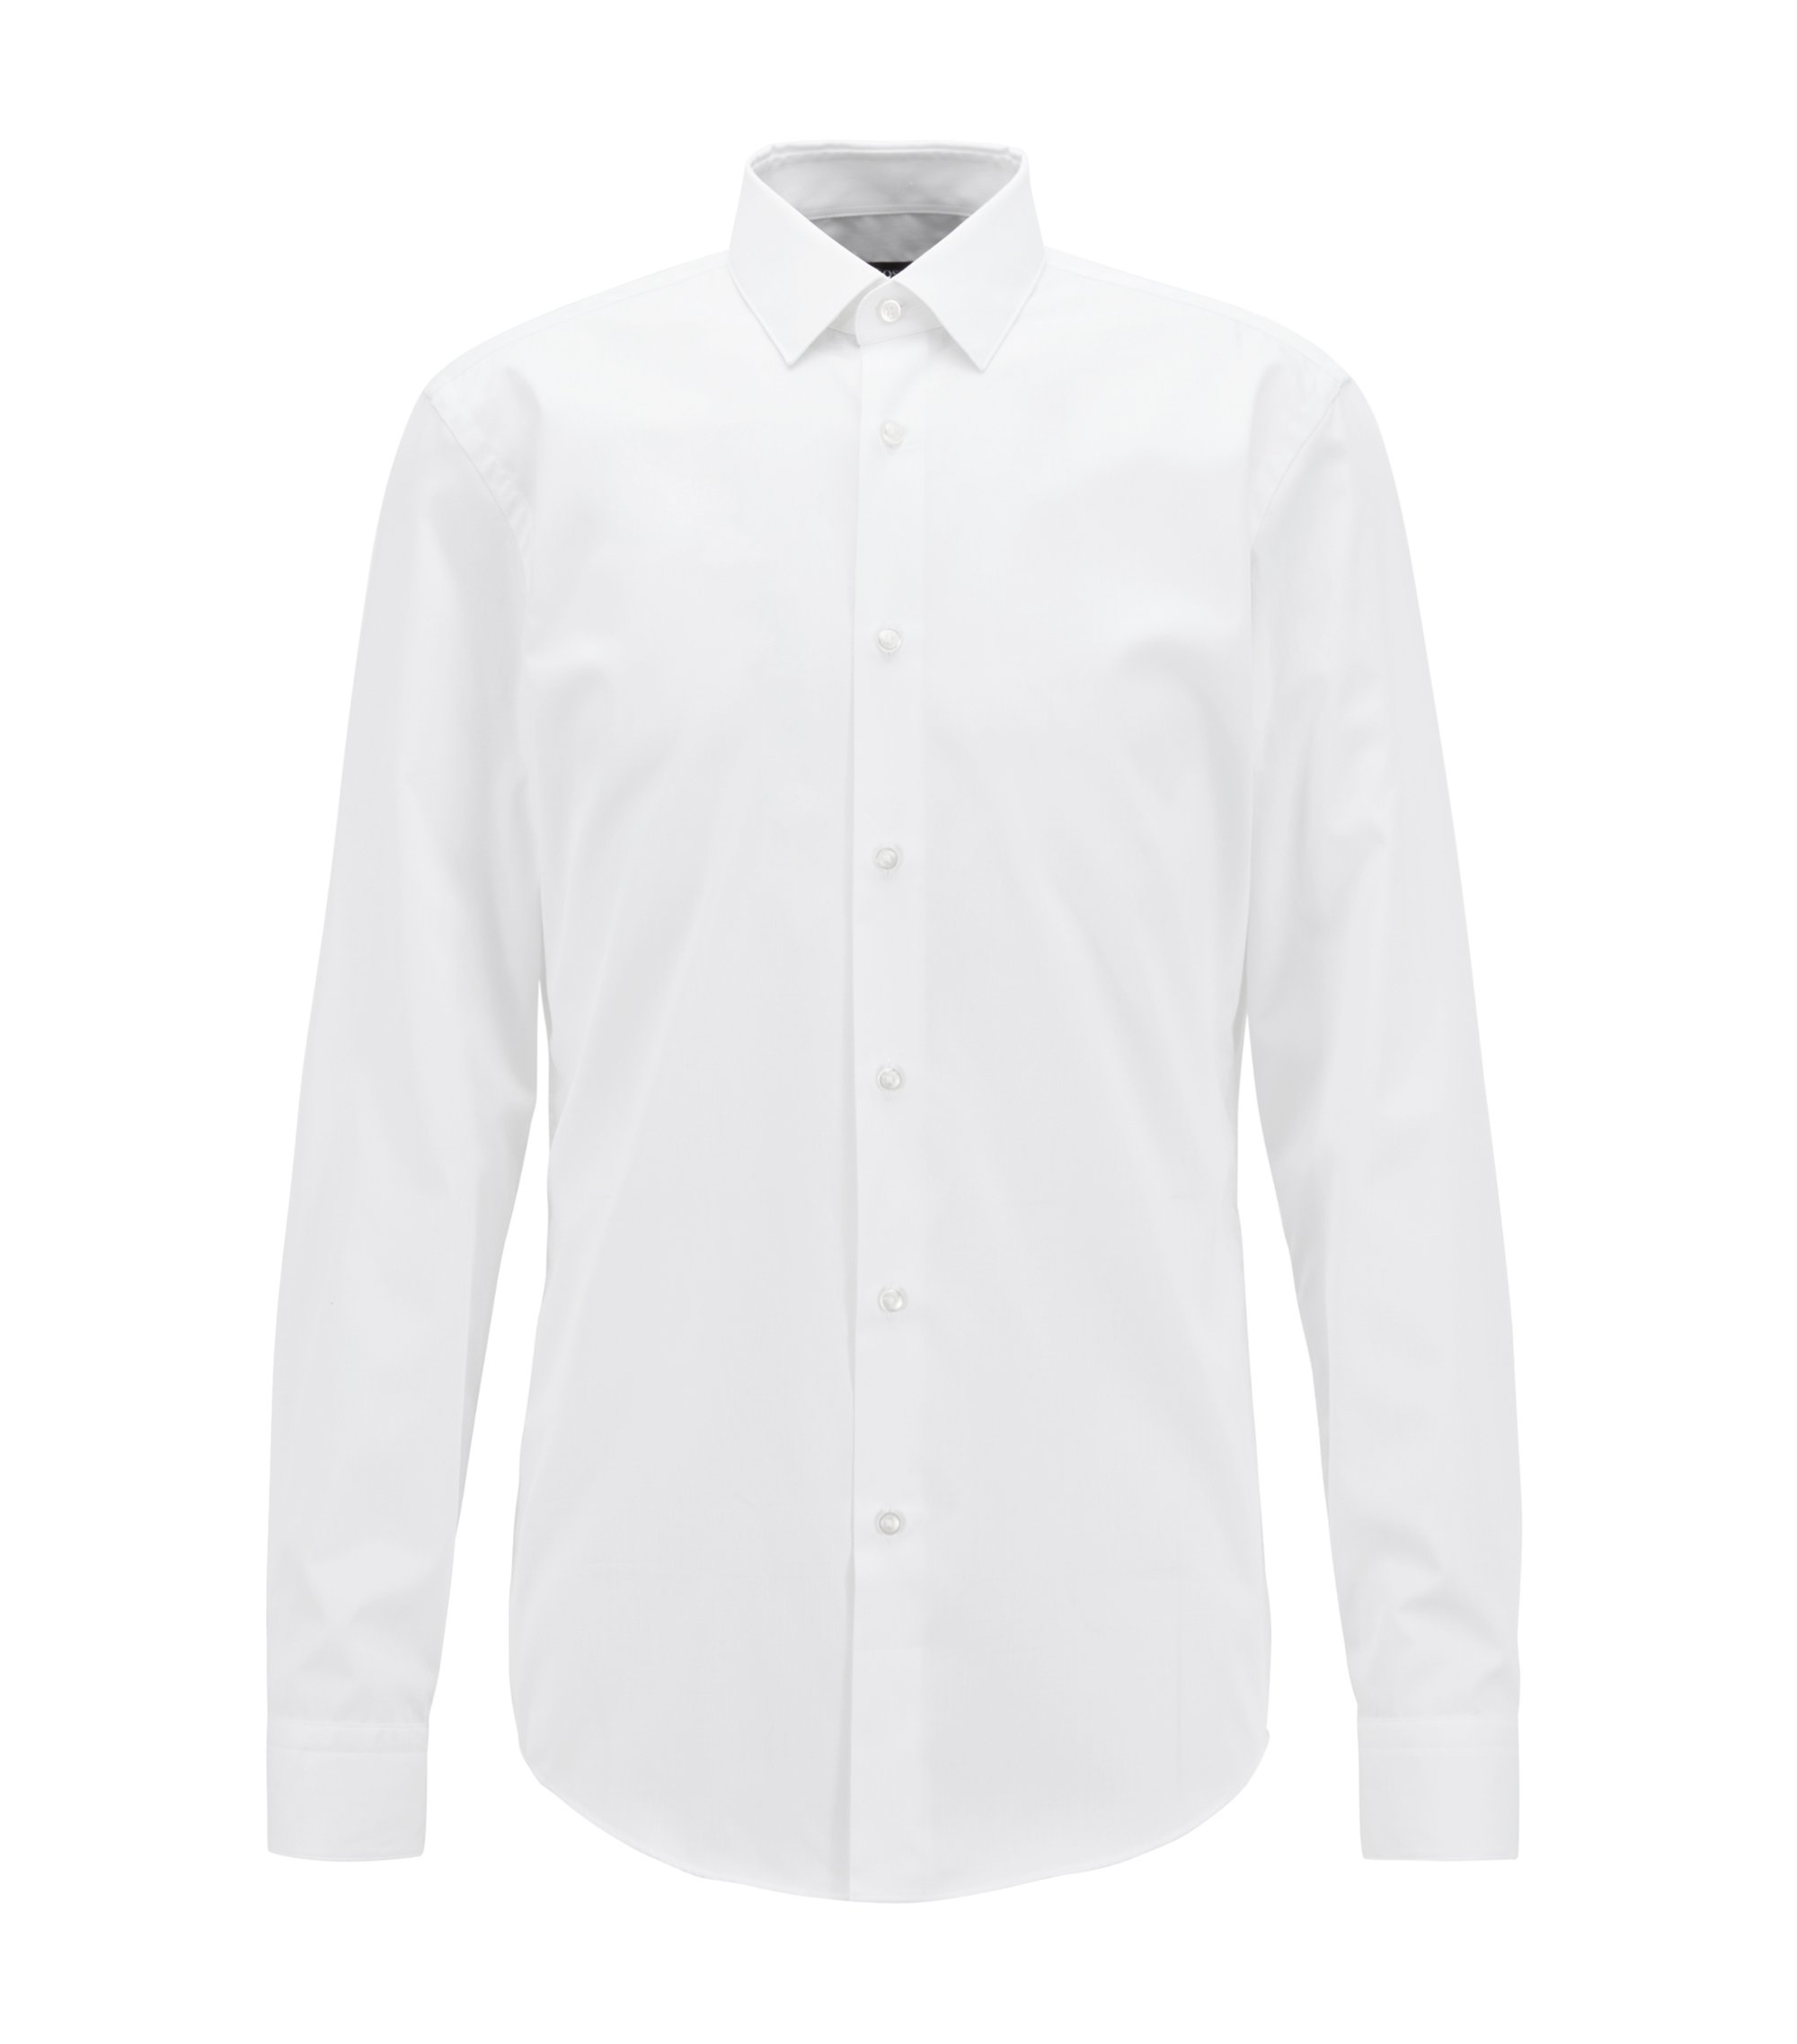 Slim-fit shirt in structured cotton with aloe vera finish, White